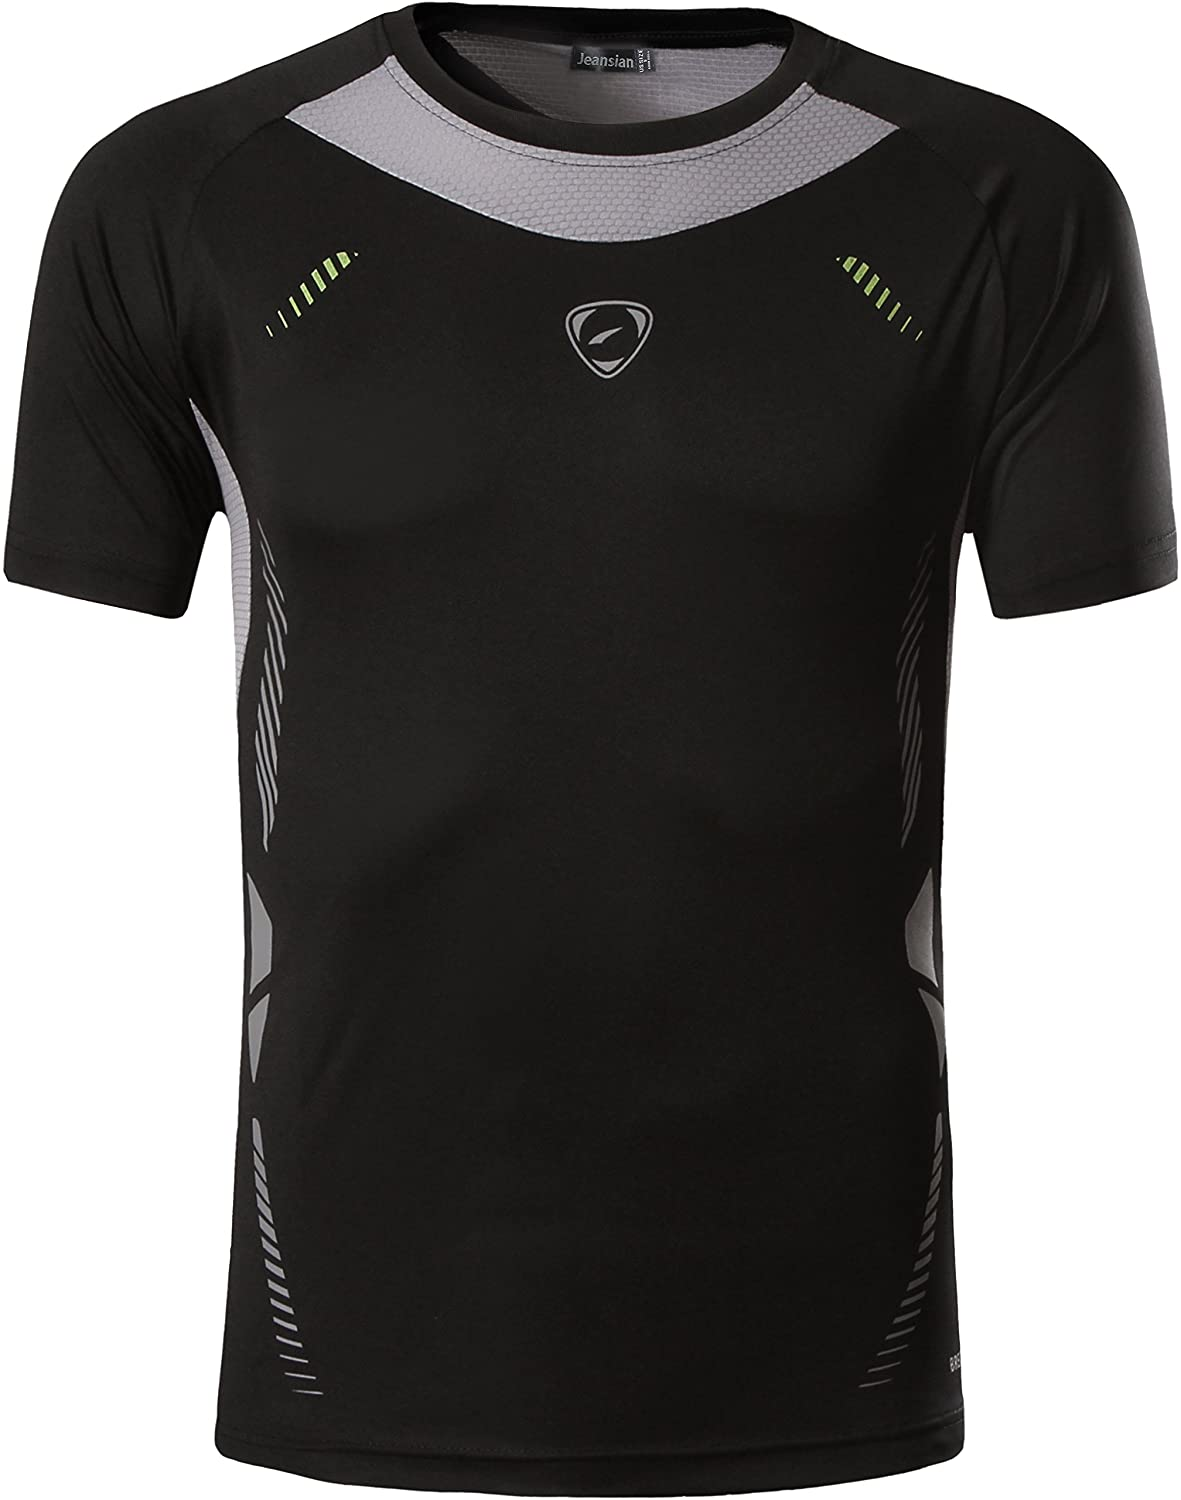 jeansian Men's Sports Breathable Quick Dry Short Sleeve T-Shirts Tee Tops Running Training LSL133 LSL133_P